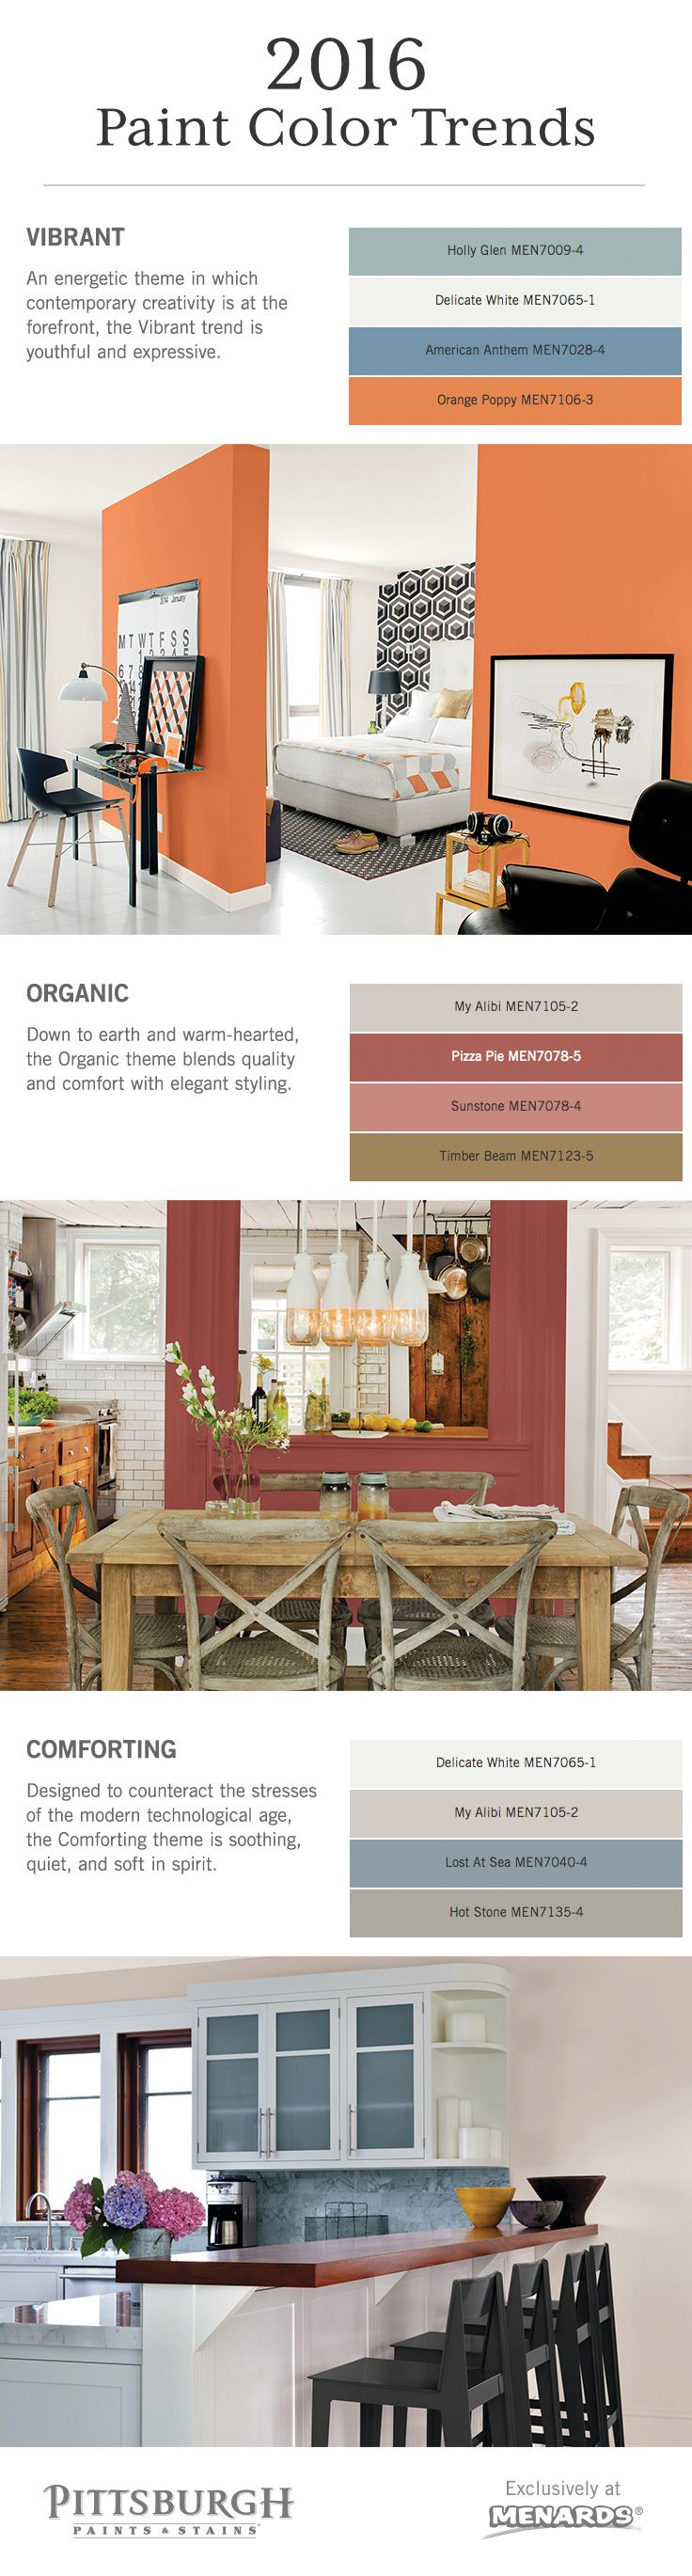 Paint colors website - 2016 Paint Color Trends Bring A Fresh New Look Into Your Home With The Pittsburgh